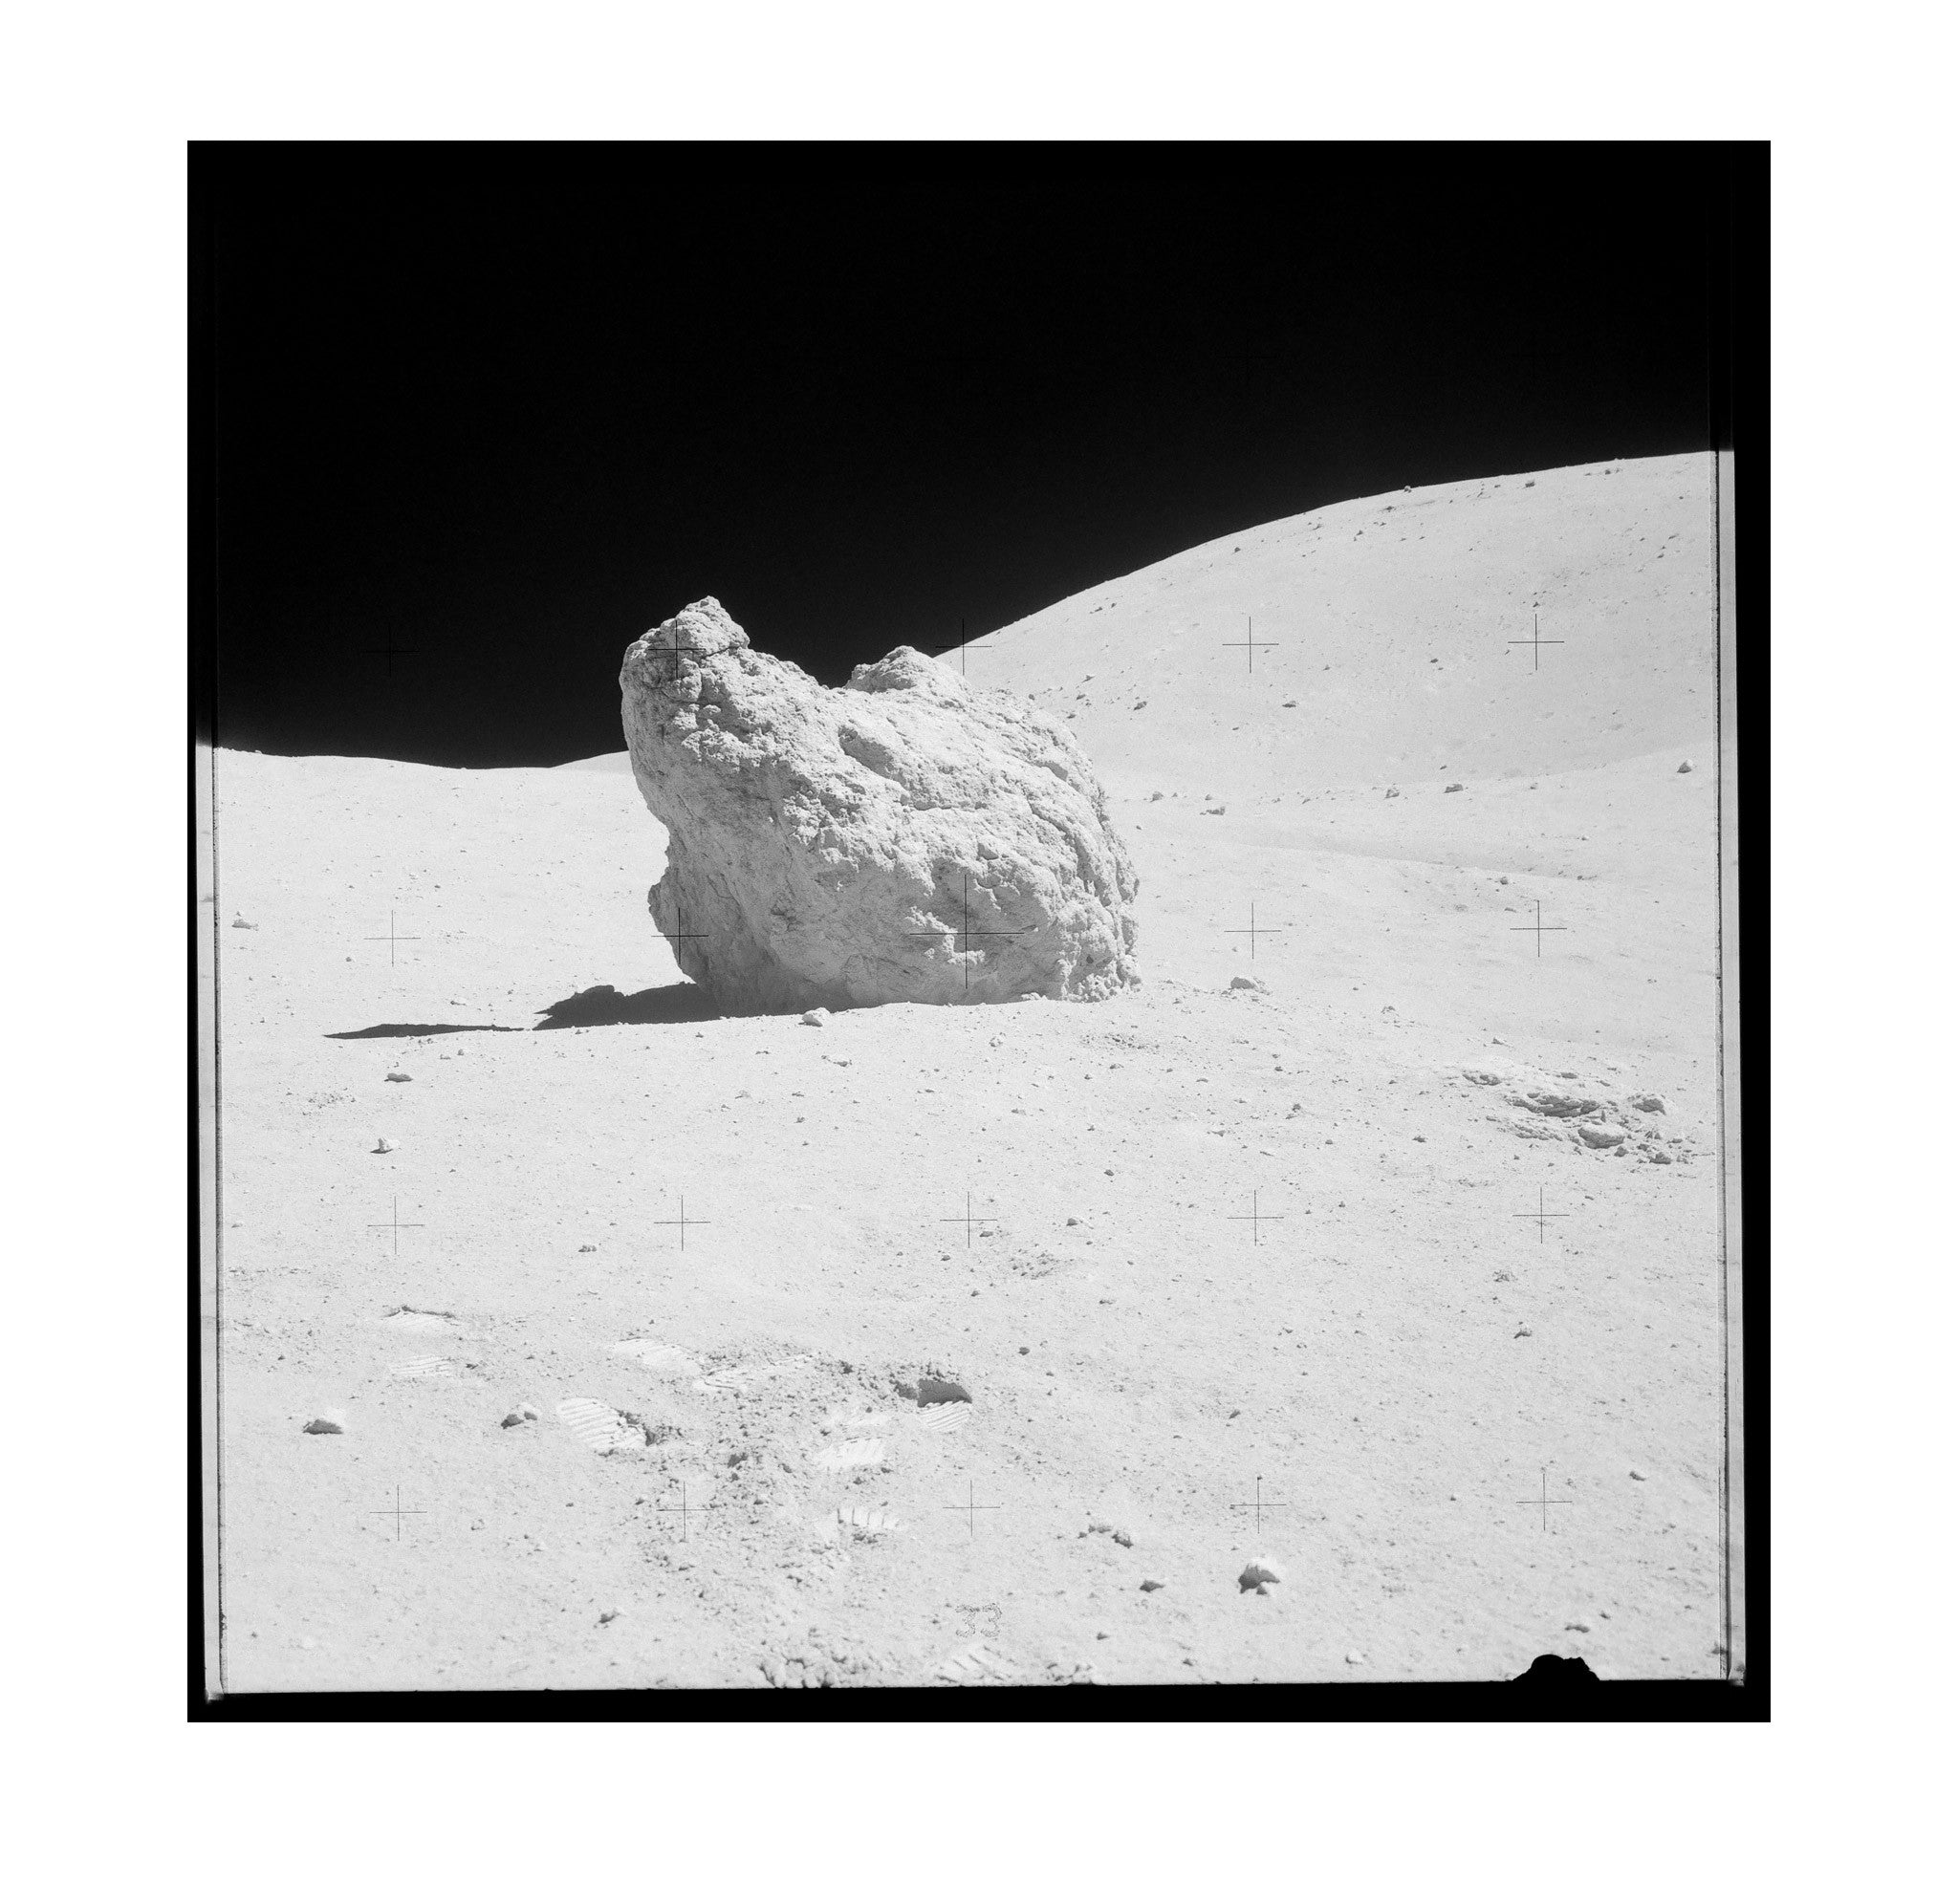 Apollo 16 – Shadow Rock